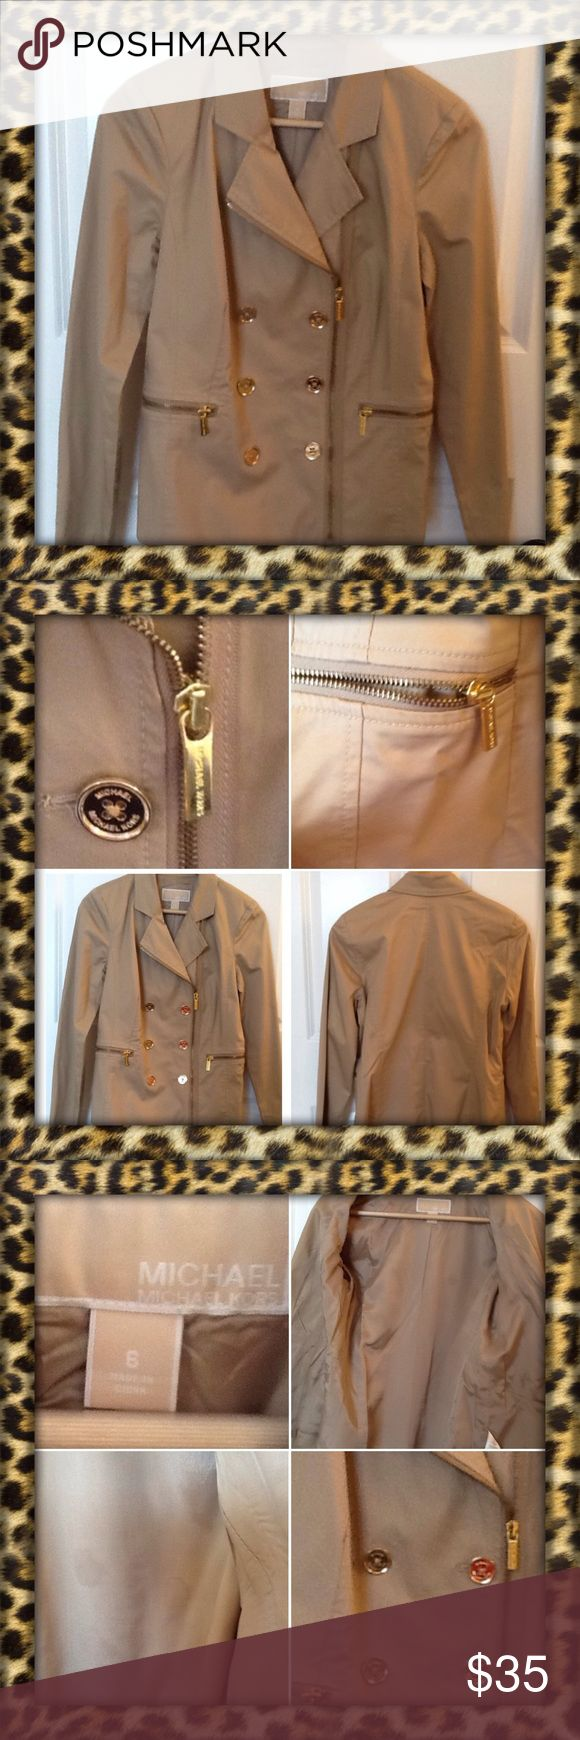 Michael Kors blazer Michael by Michael Kors Safari inspired double breasted blazer with gold buttons and zippers; pockets are functional; worn 1x; no rips; 2 small water stains in the lining (see photo) not noticeable when wearing MICHAEL Michael Kors Jackets & Coats Blazers